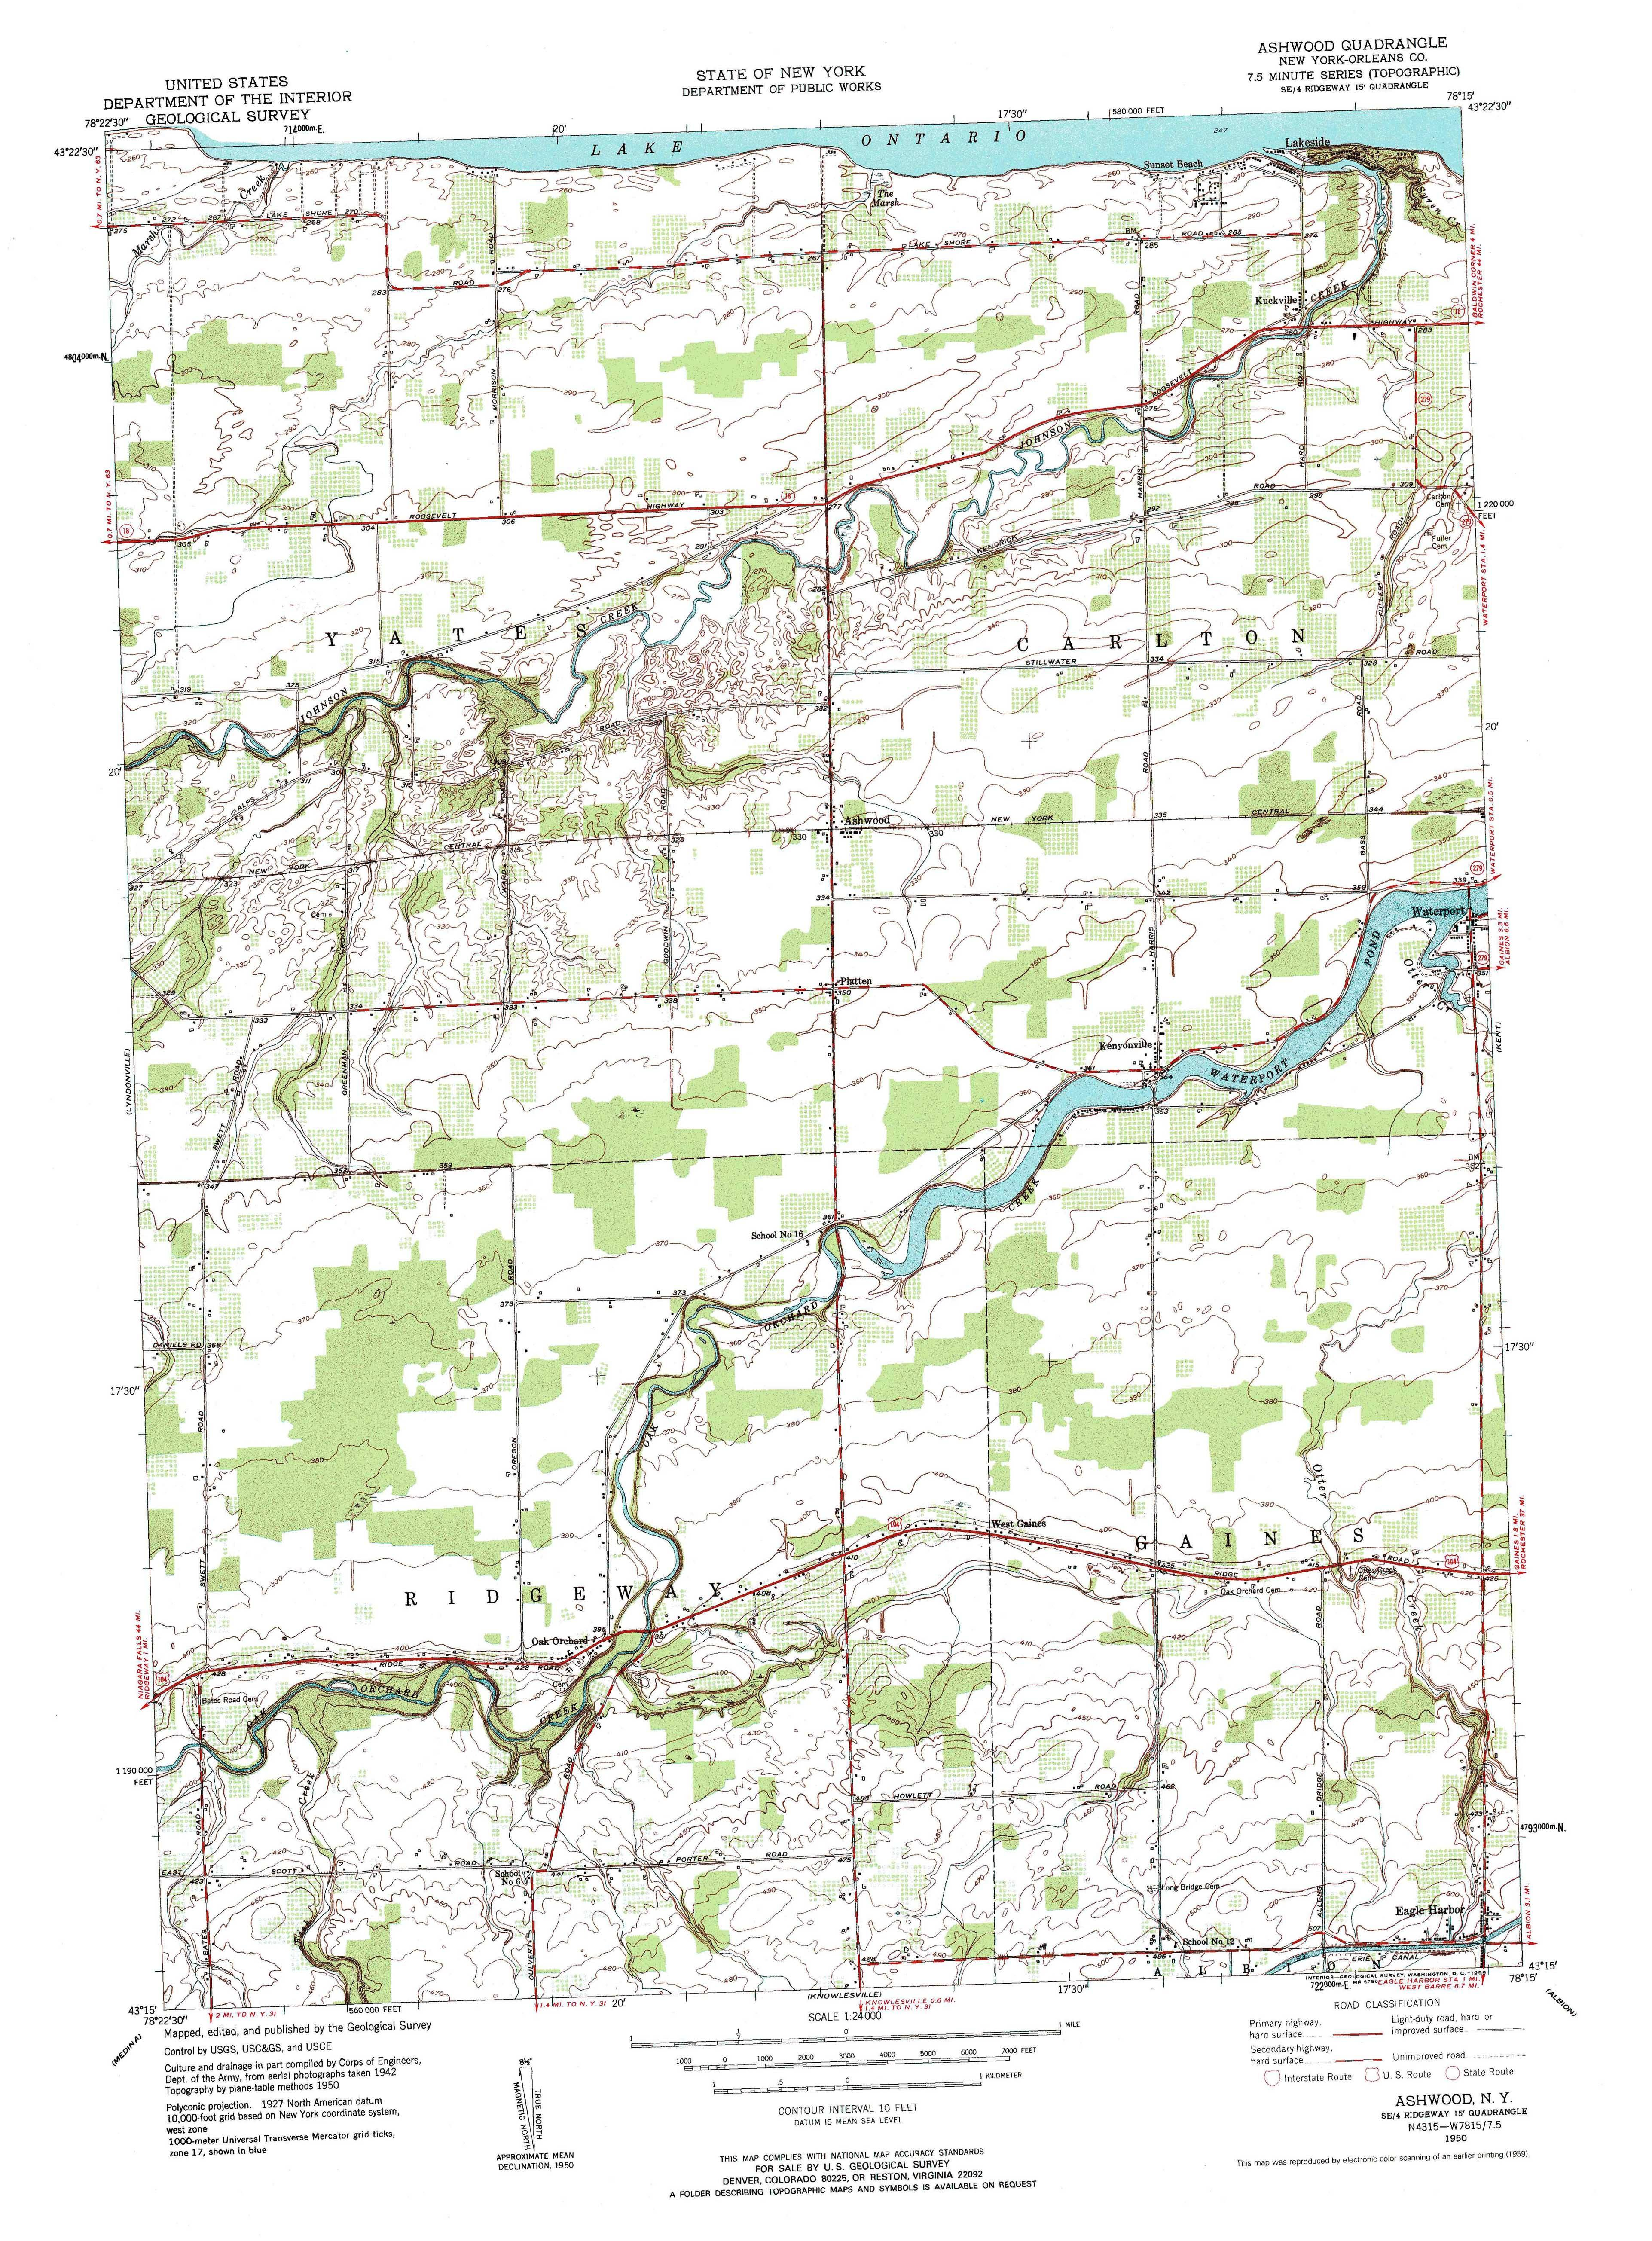 New York Topo Maps  Minute Topographic Maps  Scale - Map of new york state fire districts